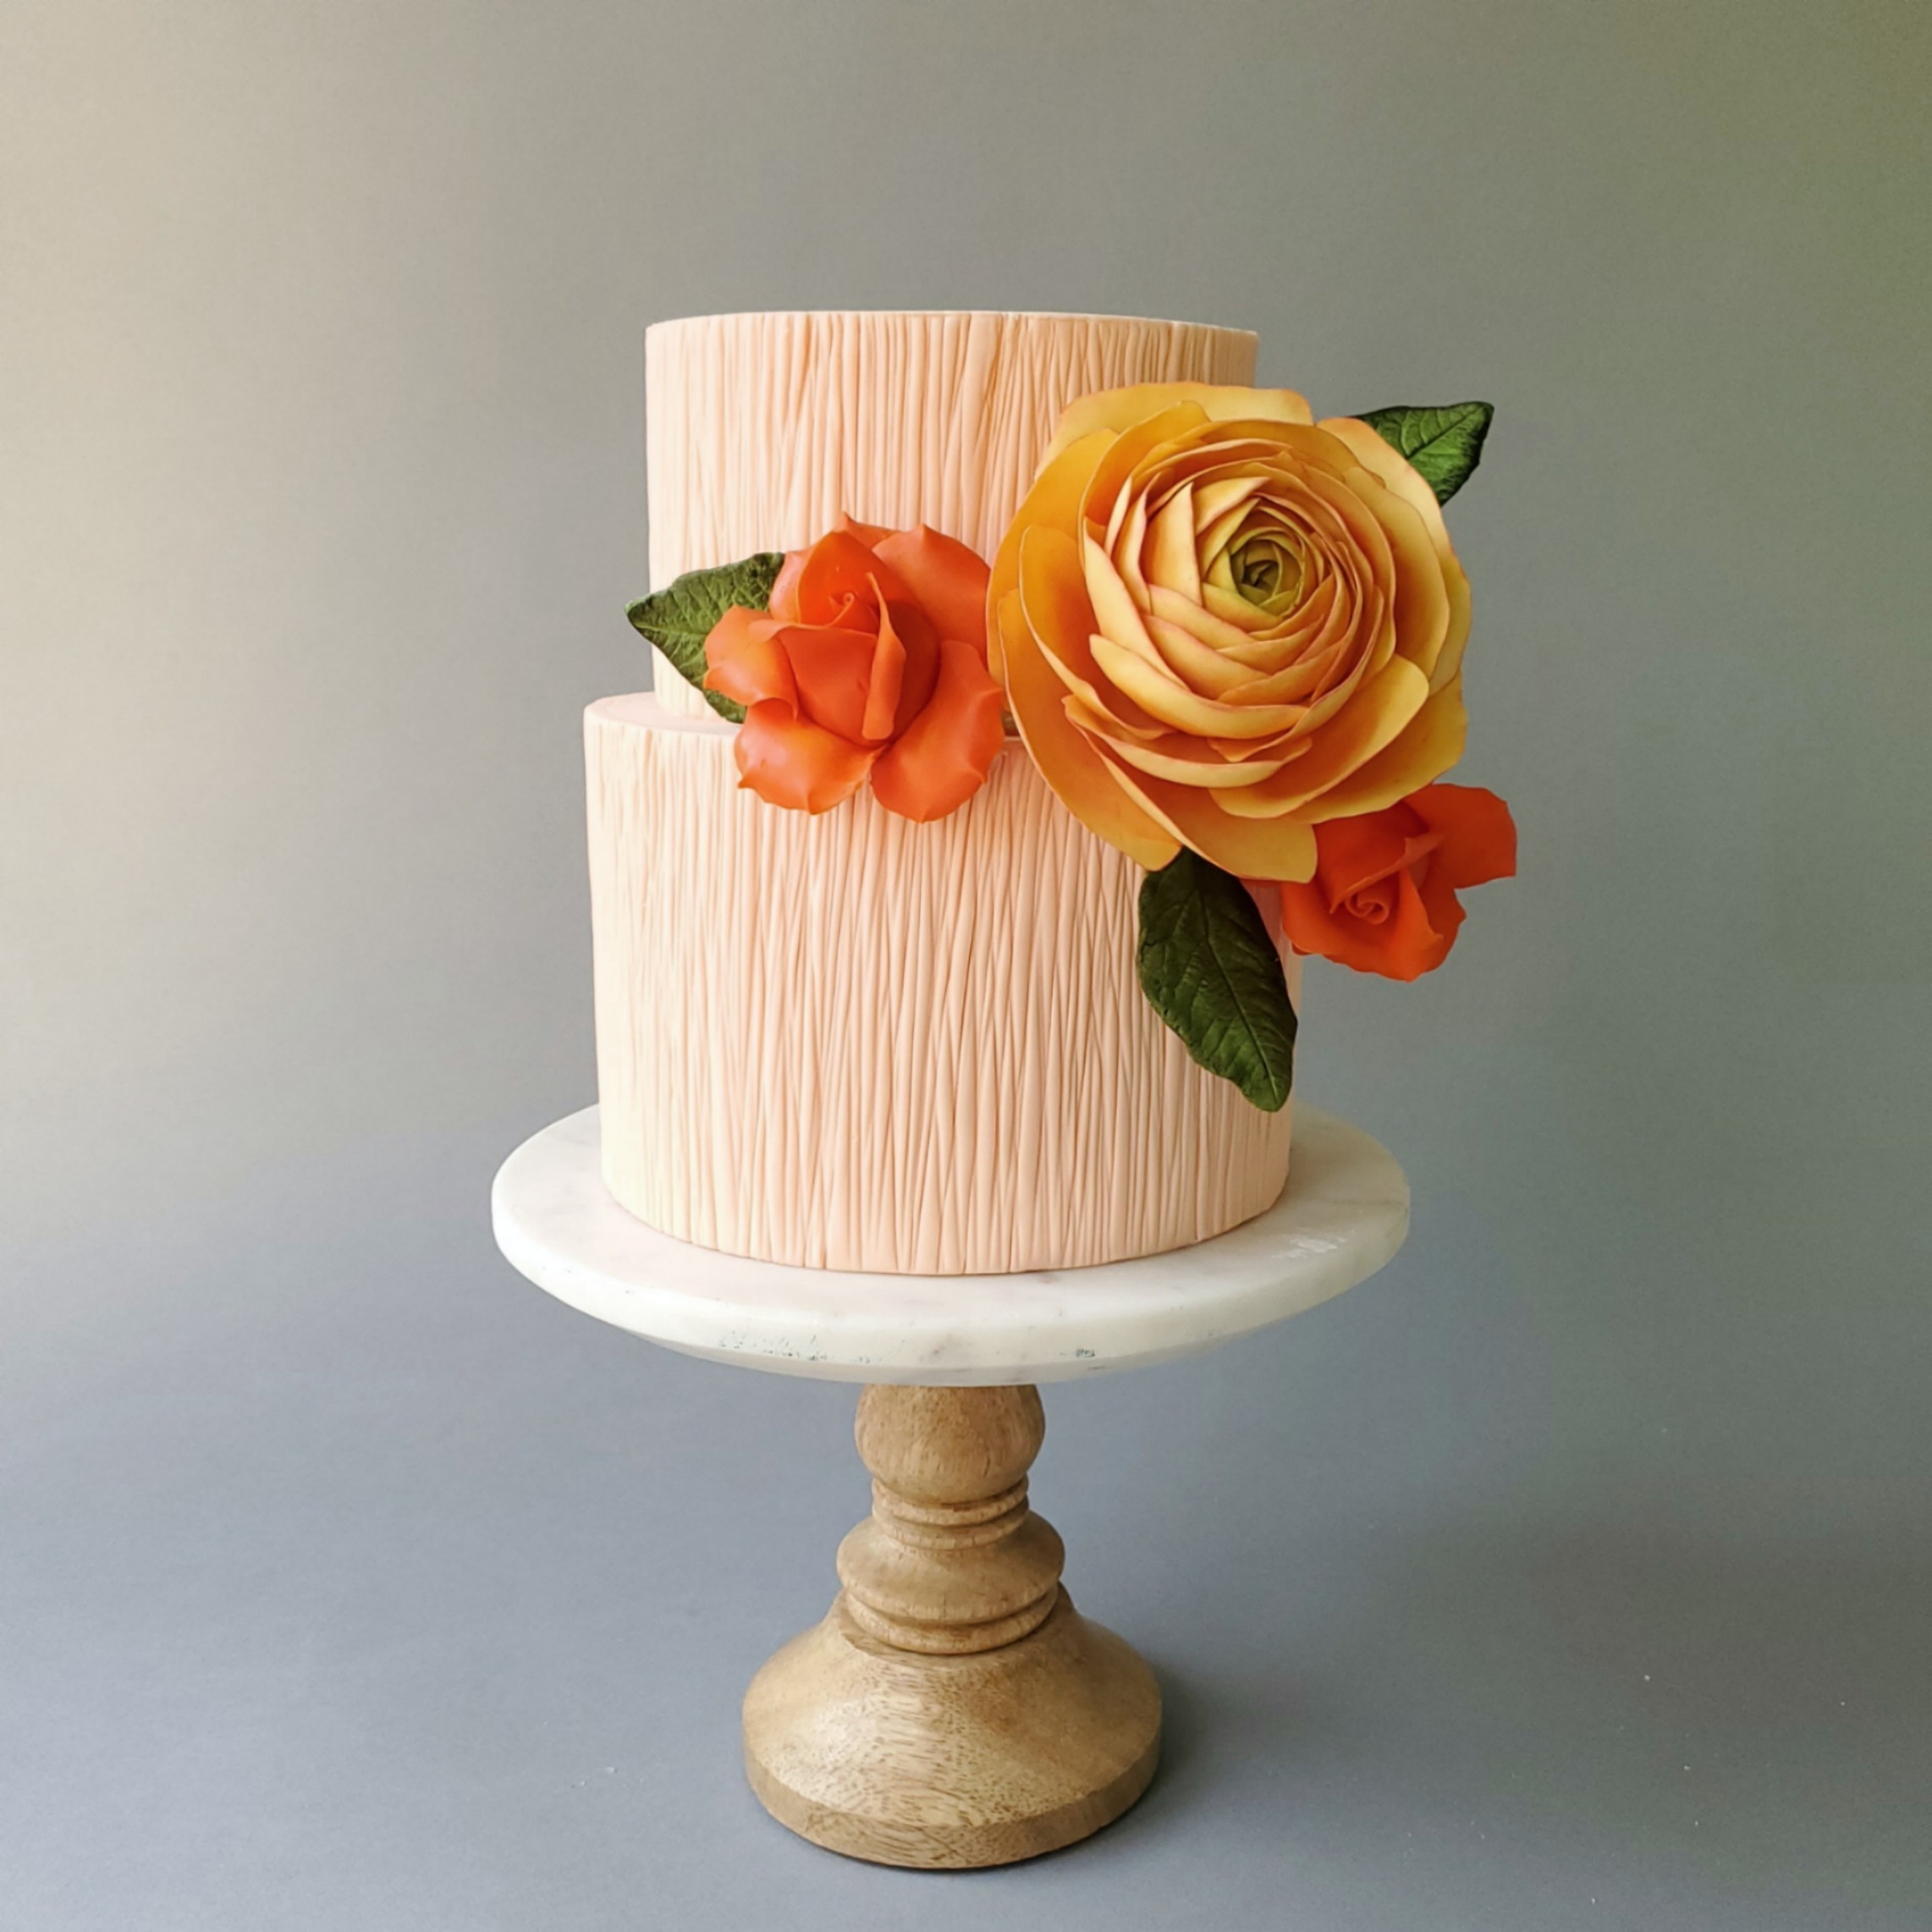 All peach wedding cake with citrus floral bouquet